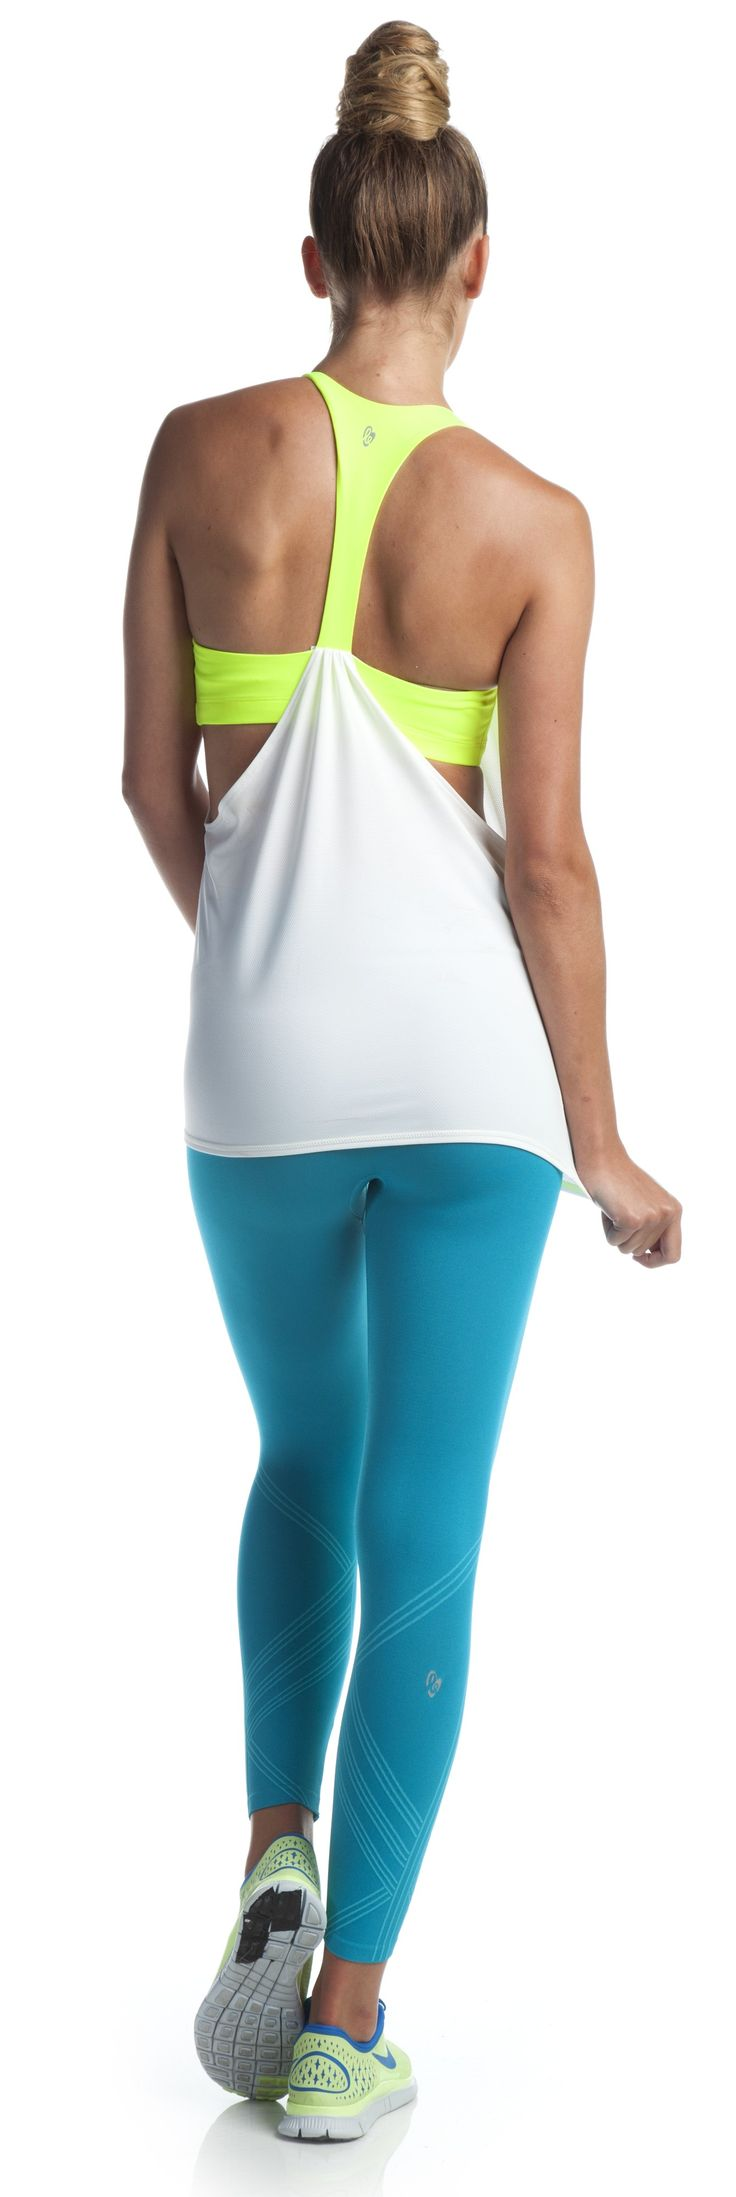 best workout and yoga clothes images on pinterest athletic wear